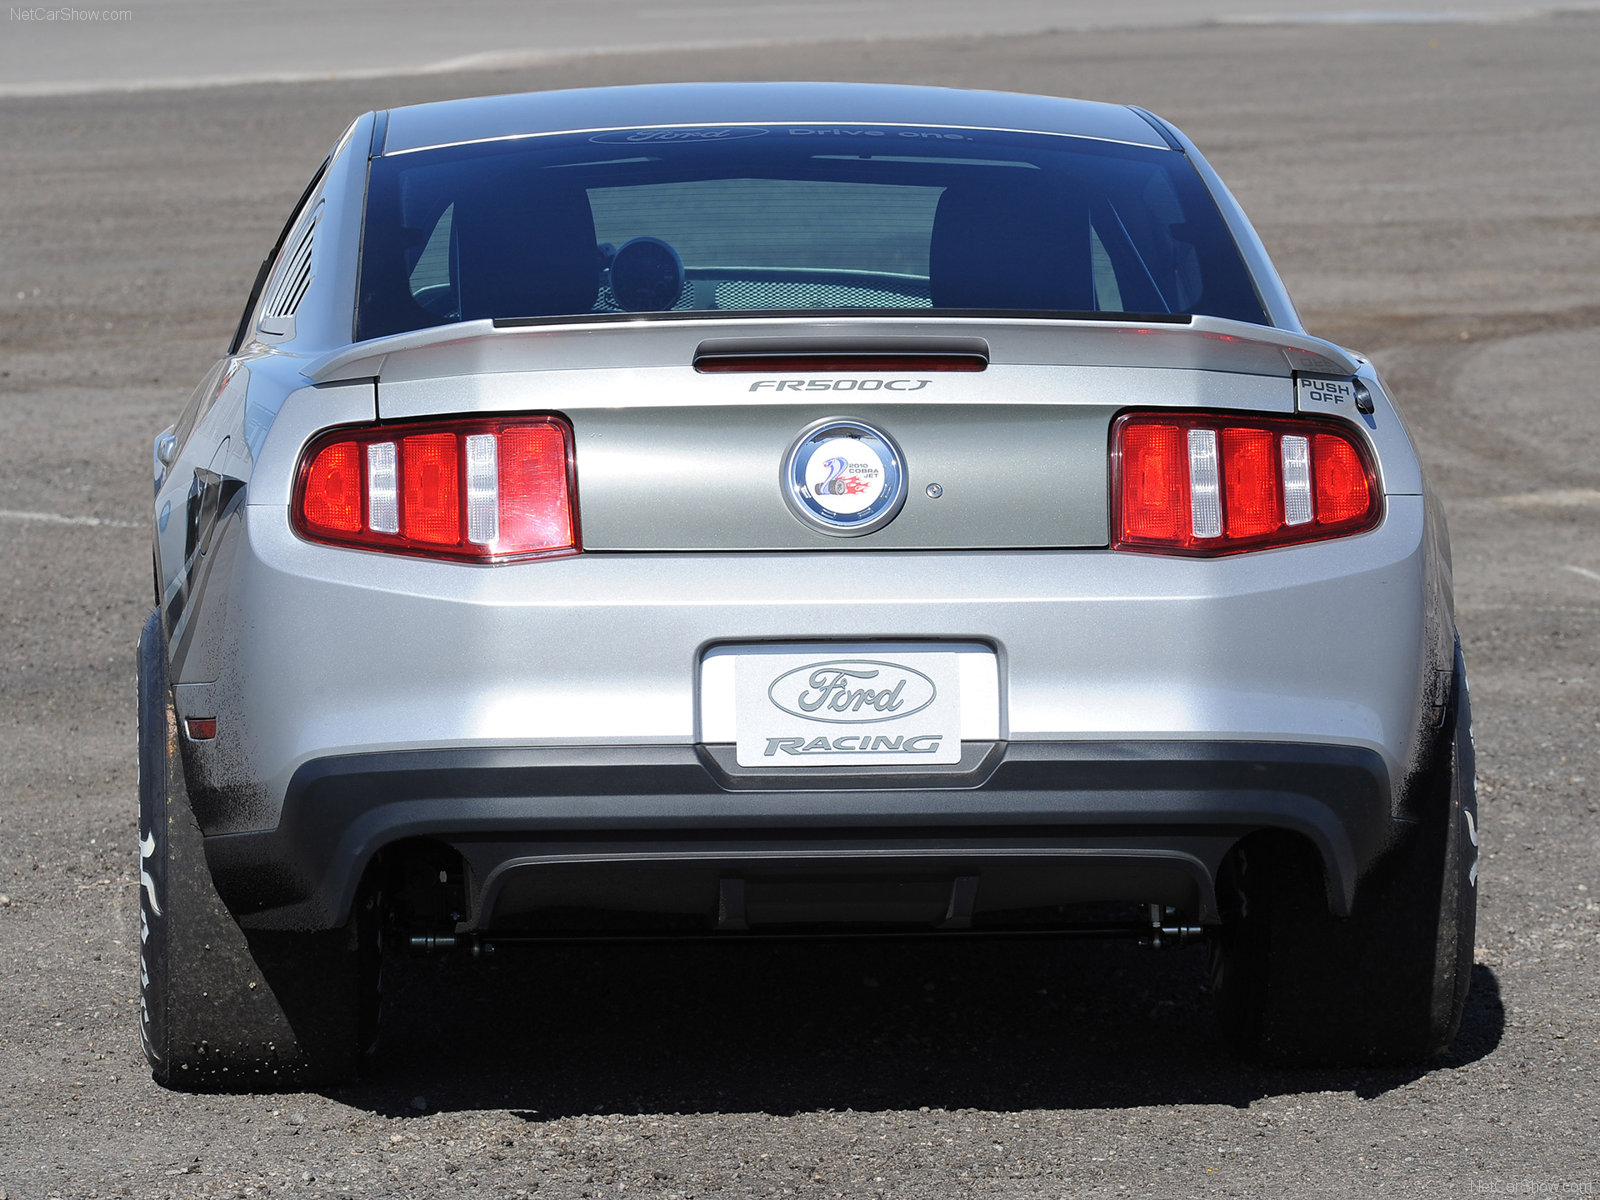 Ford Mustang Cobra Jet photo 68927